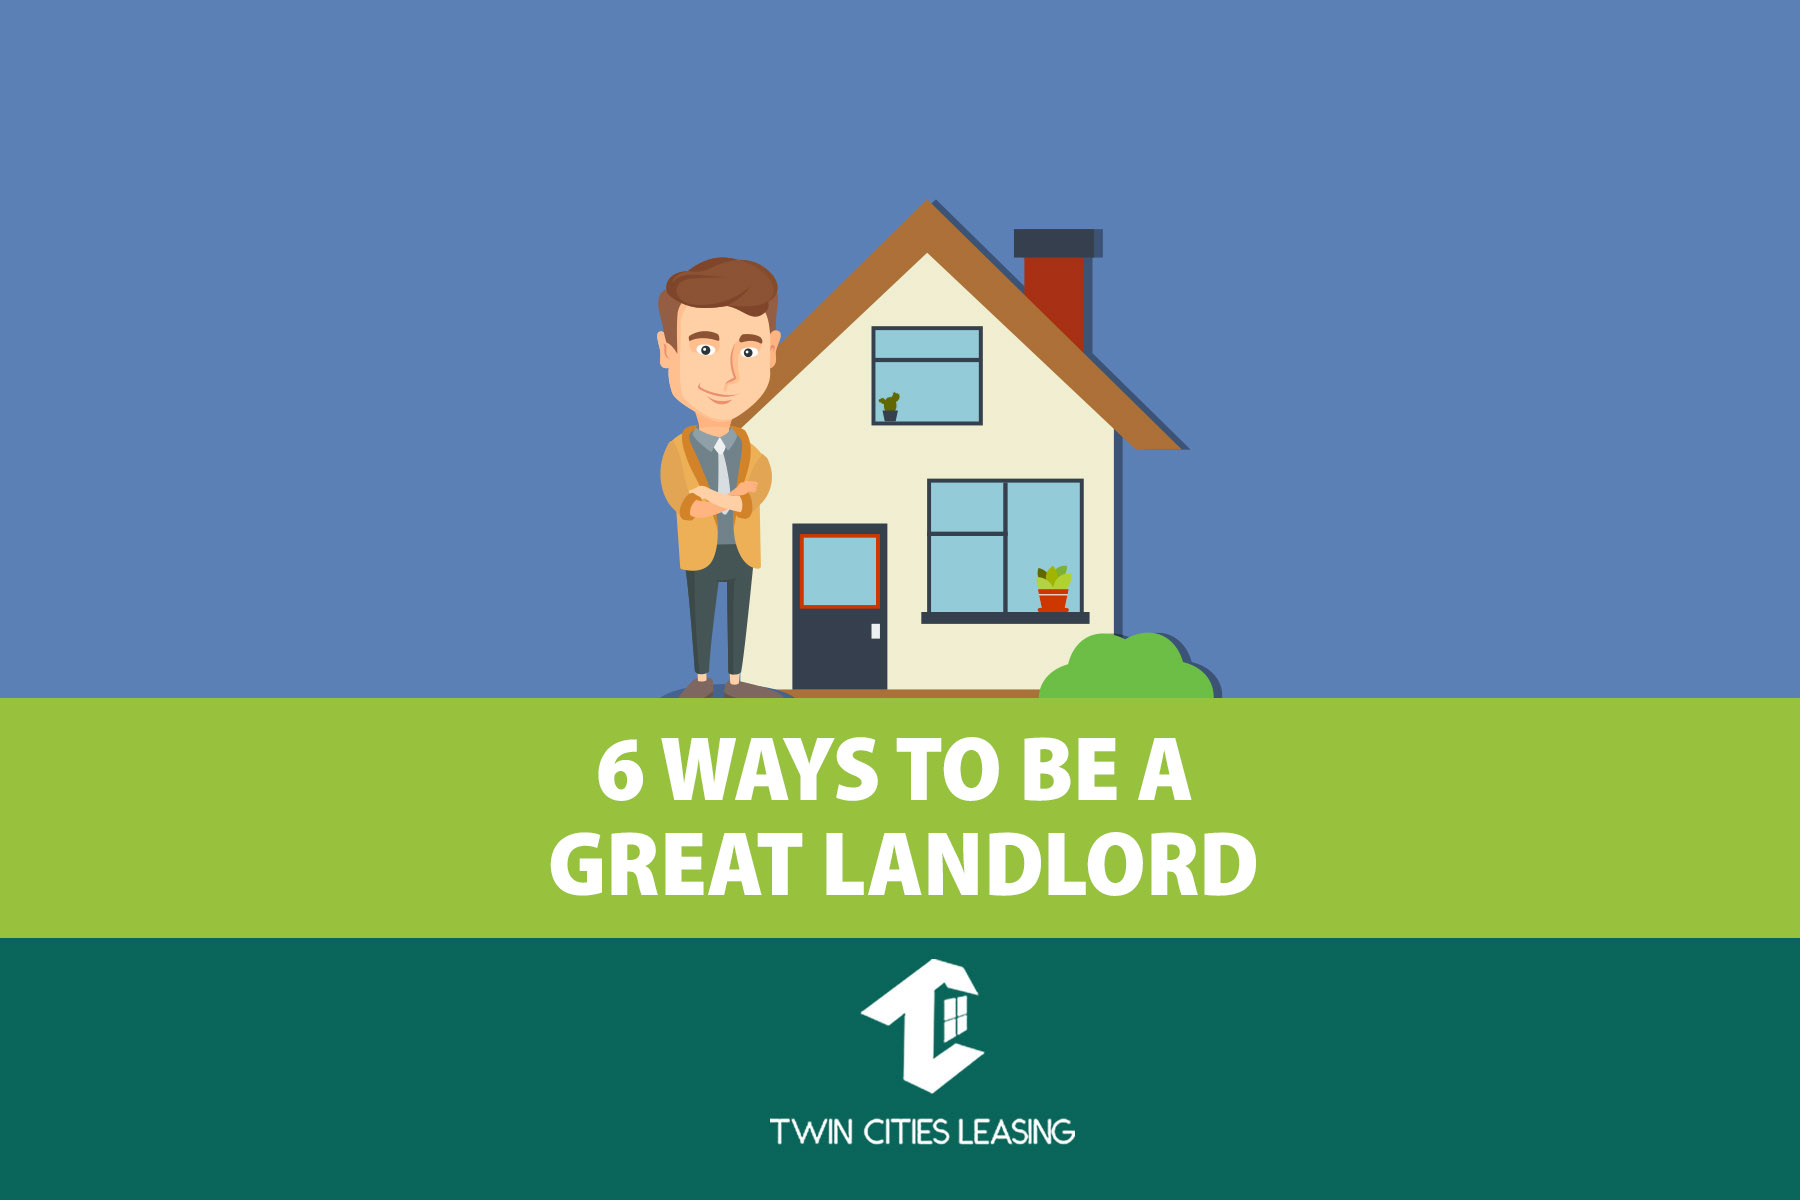 6 Ways to Be a Great Landlord